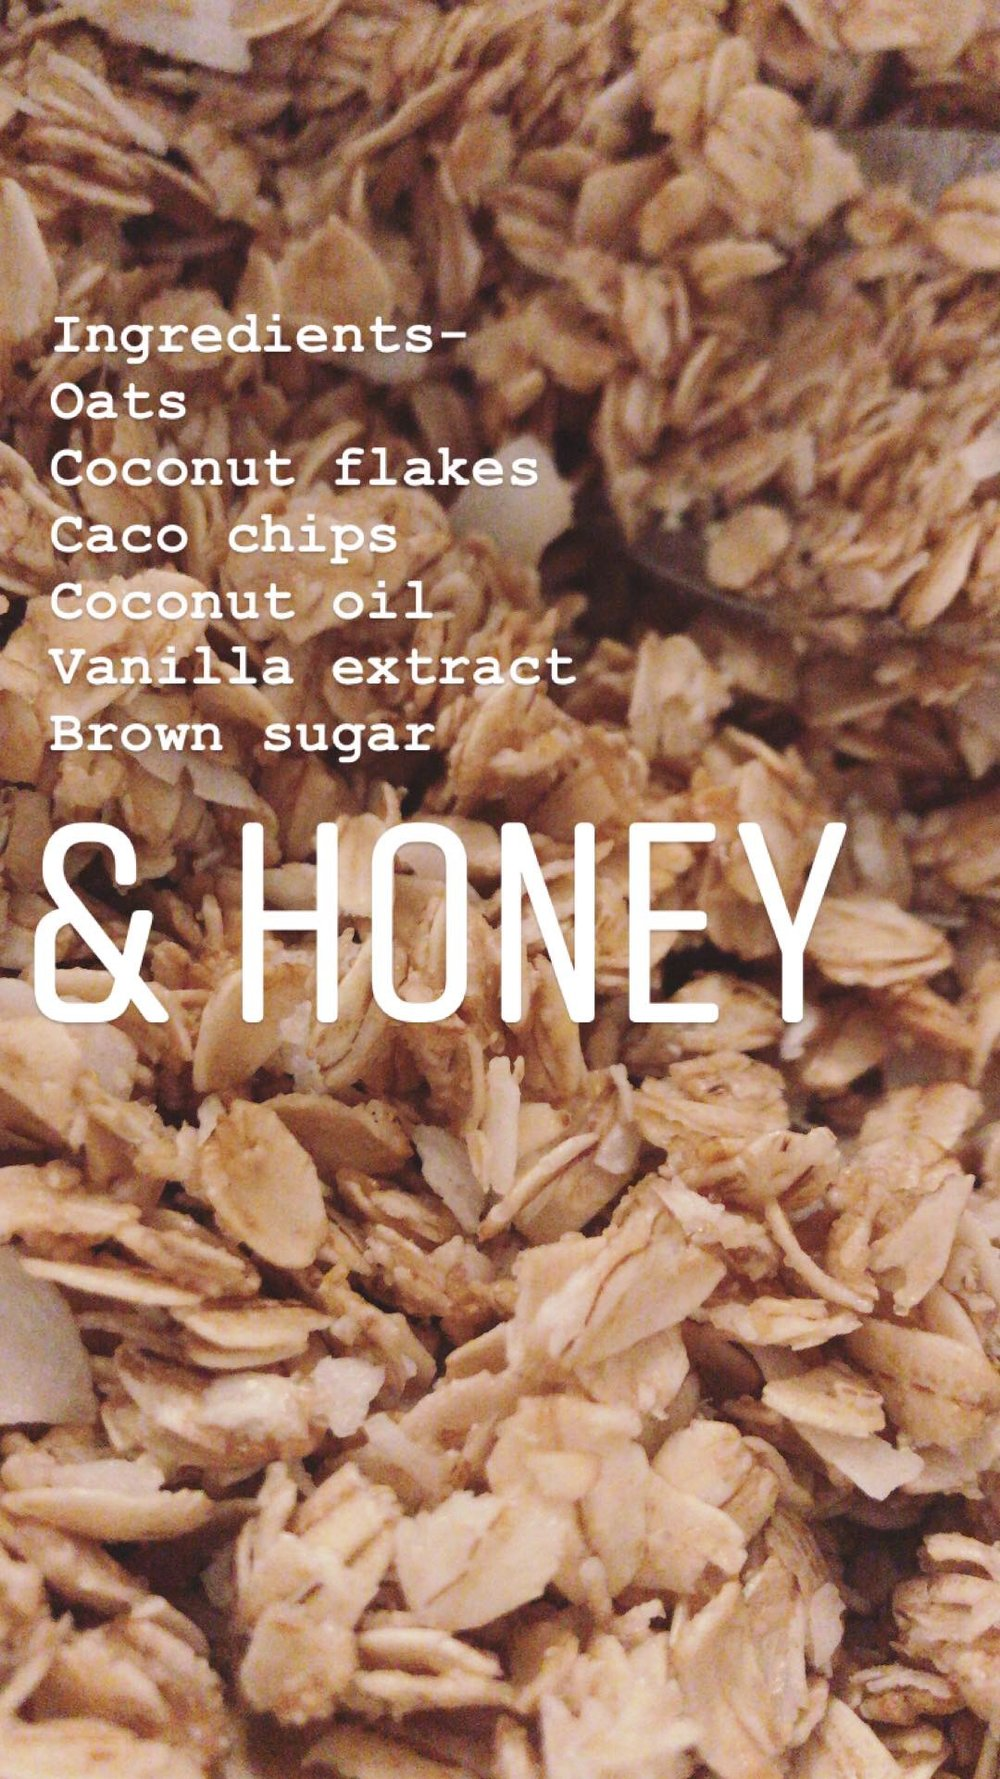 3 cups of oats  1/3 cup brown sugar  1/3 cup honey  3 tablespoons of honey  1/4 teaspoon vanilla extract   1 cup coconut flakes  1/2 cup of caco chips or however much you prefer (also can chop up or leave chunky)